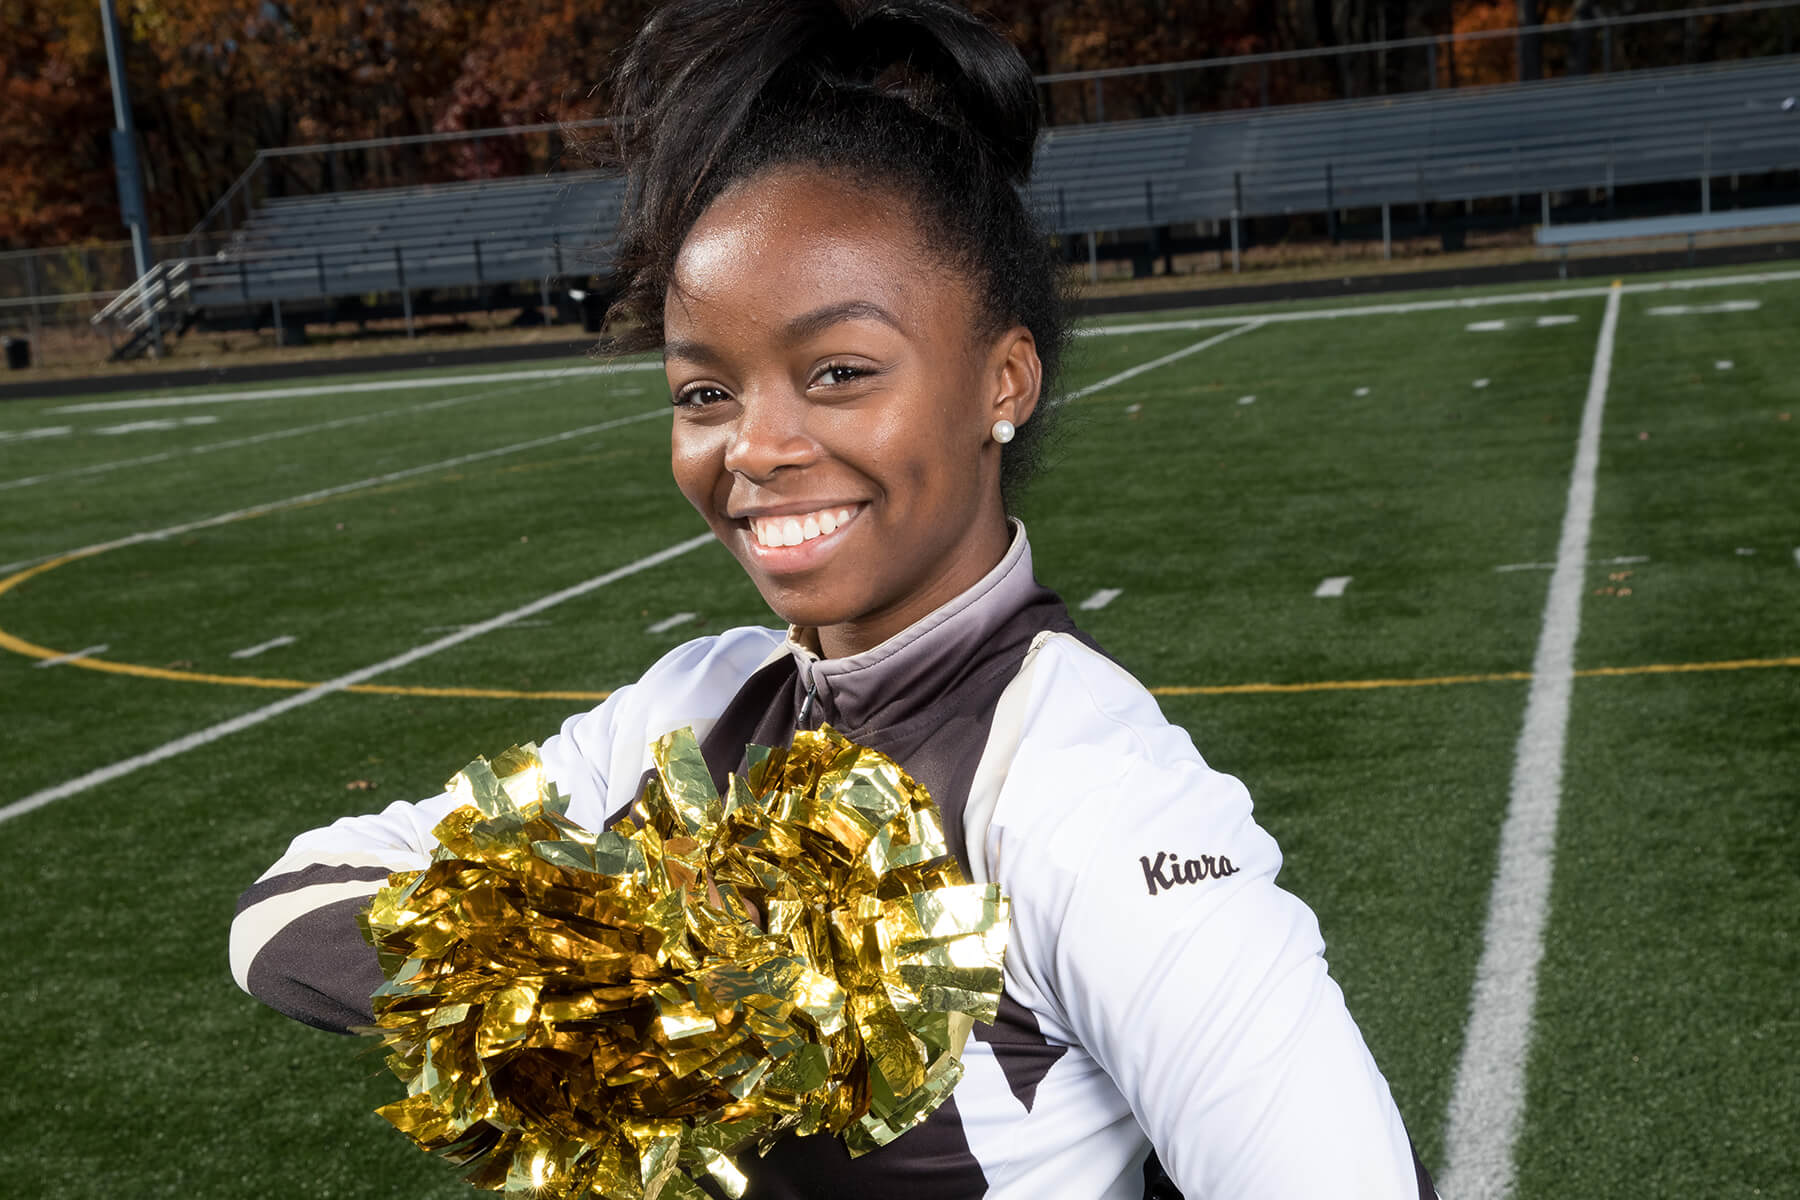 wendy s high school heisman kiara mickens athletic achievements spirit cheerleading